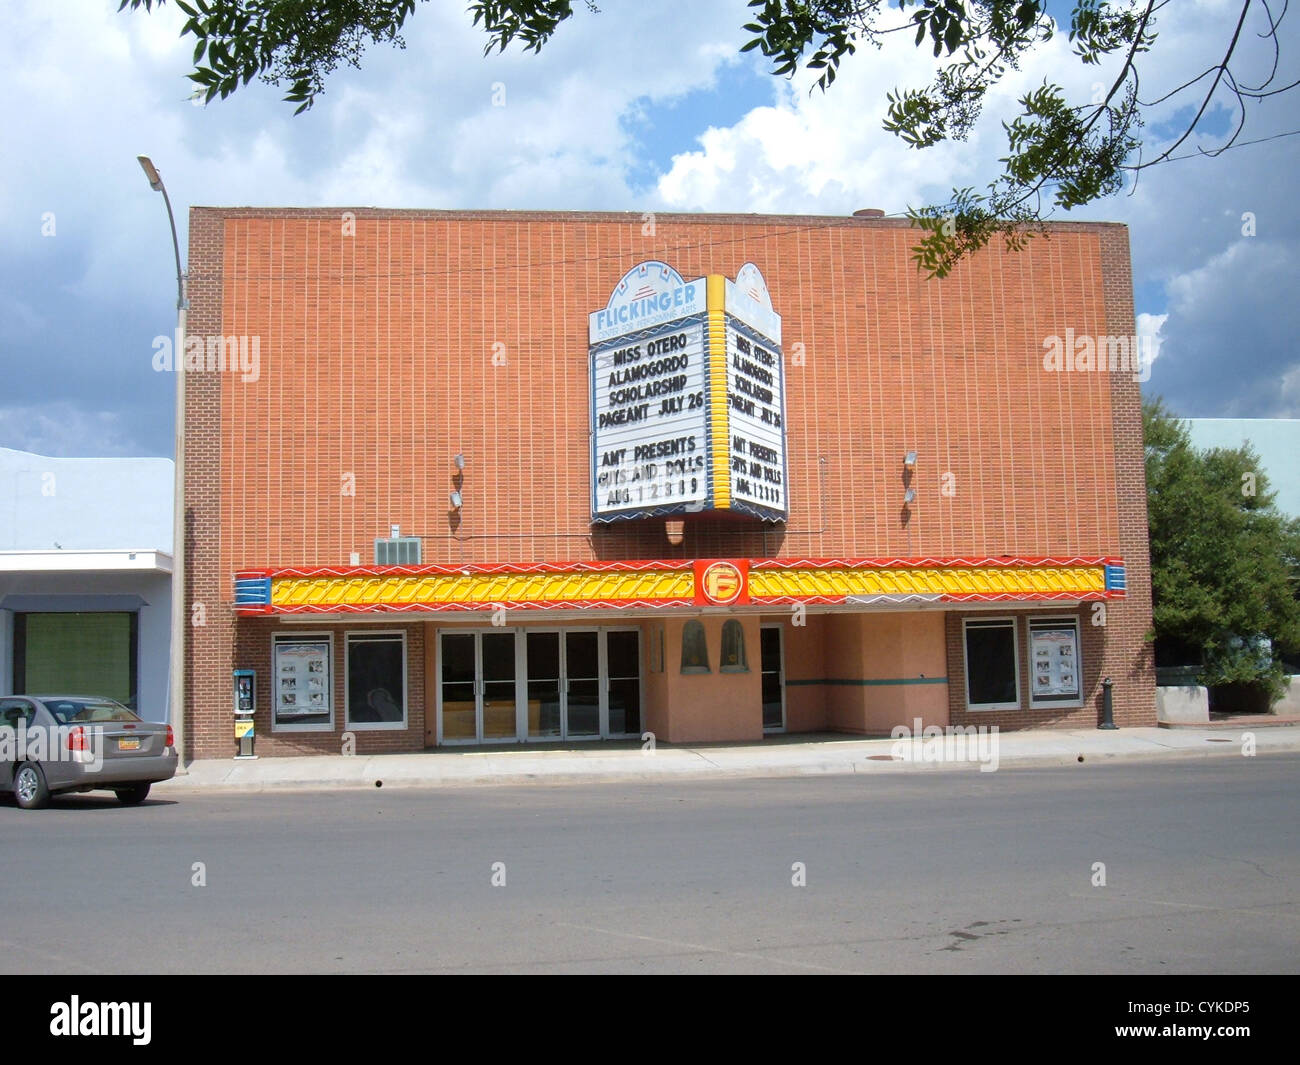 Flickinger Center for Performing Arts in Alamogordo, New Mexico, located at 1110 New York Avenue, showing the box - Stock Image